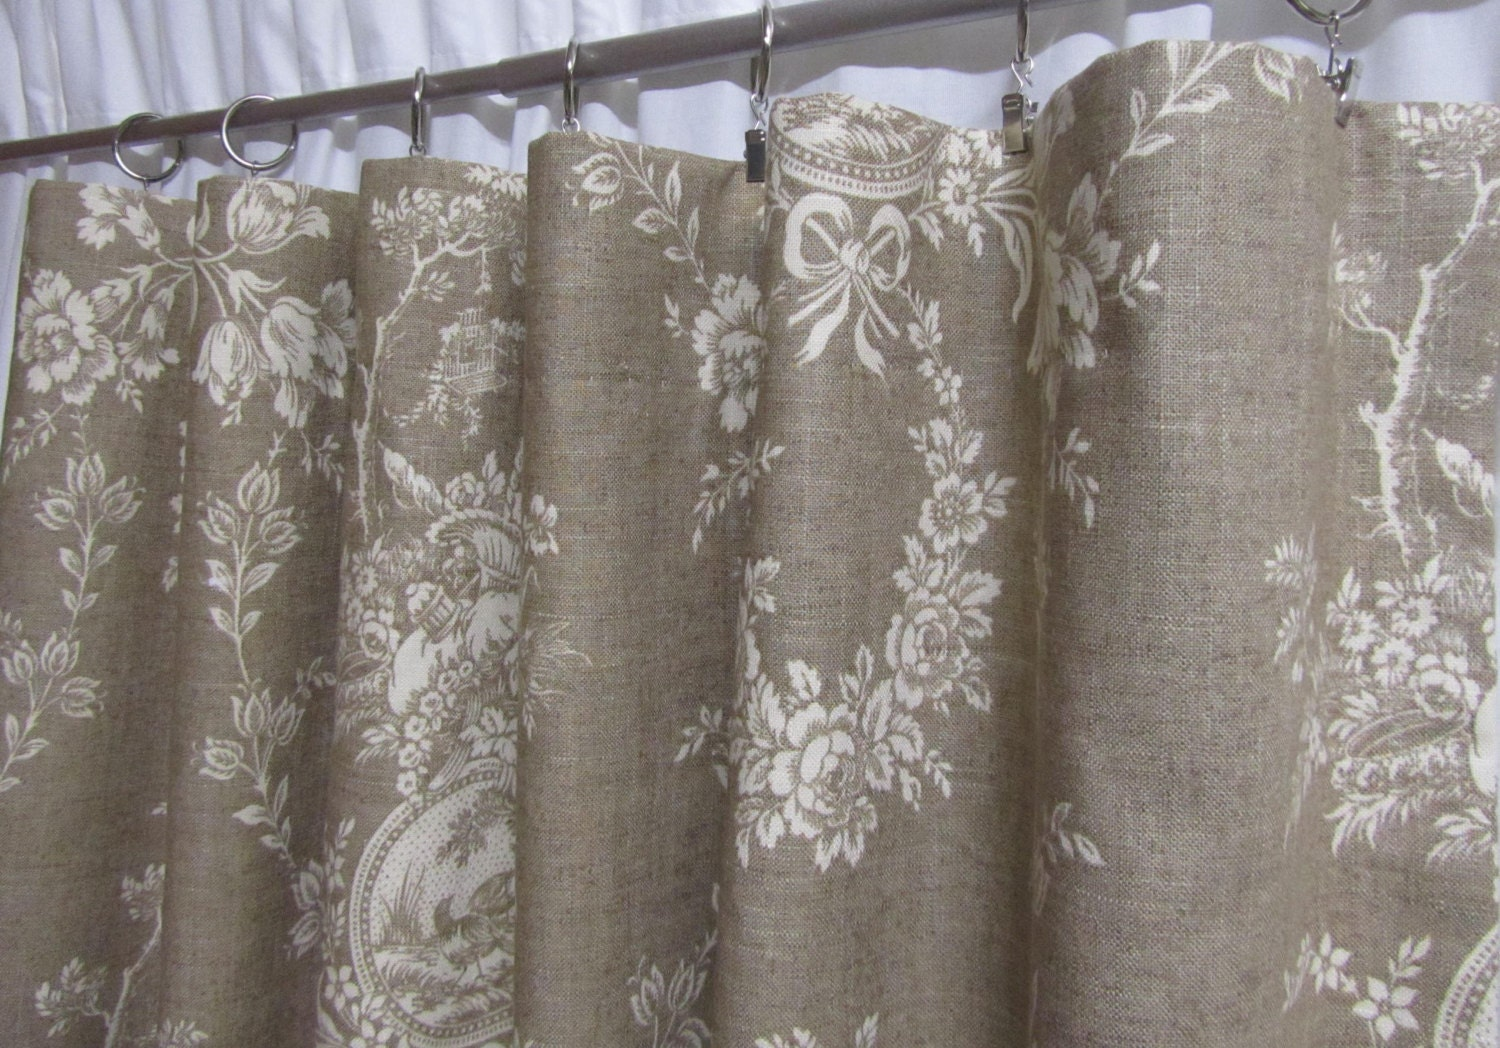 Black toile shower curtain - French Country Curtains Neutral Toile Drapes Linen Colored Window Curtains Shabby Chic French Chic Rod Pocket One Pair 50 W